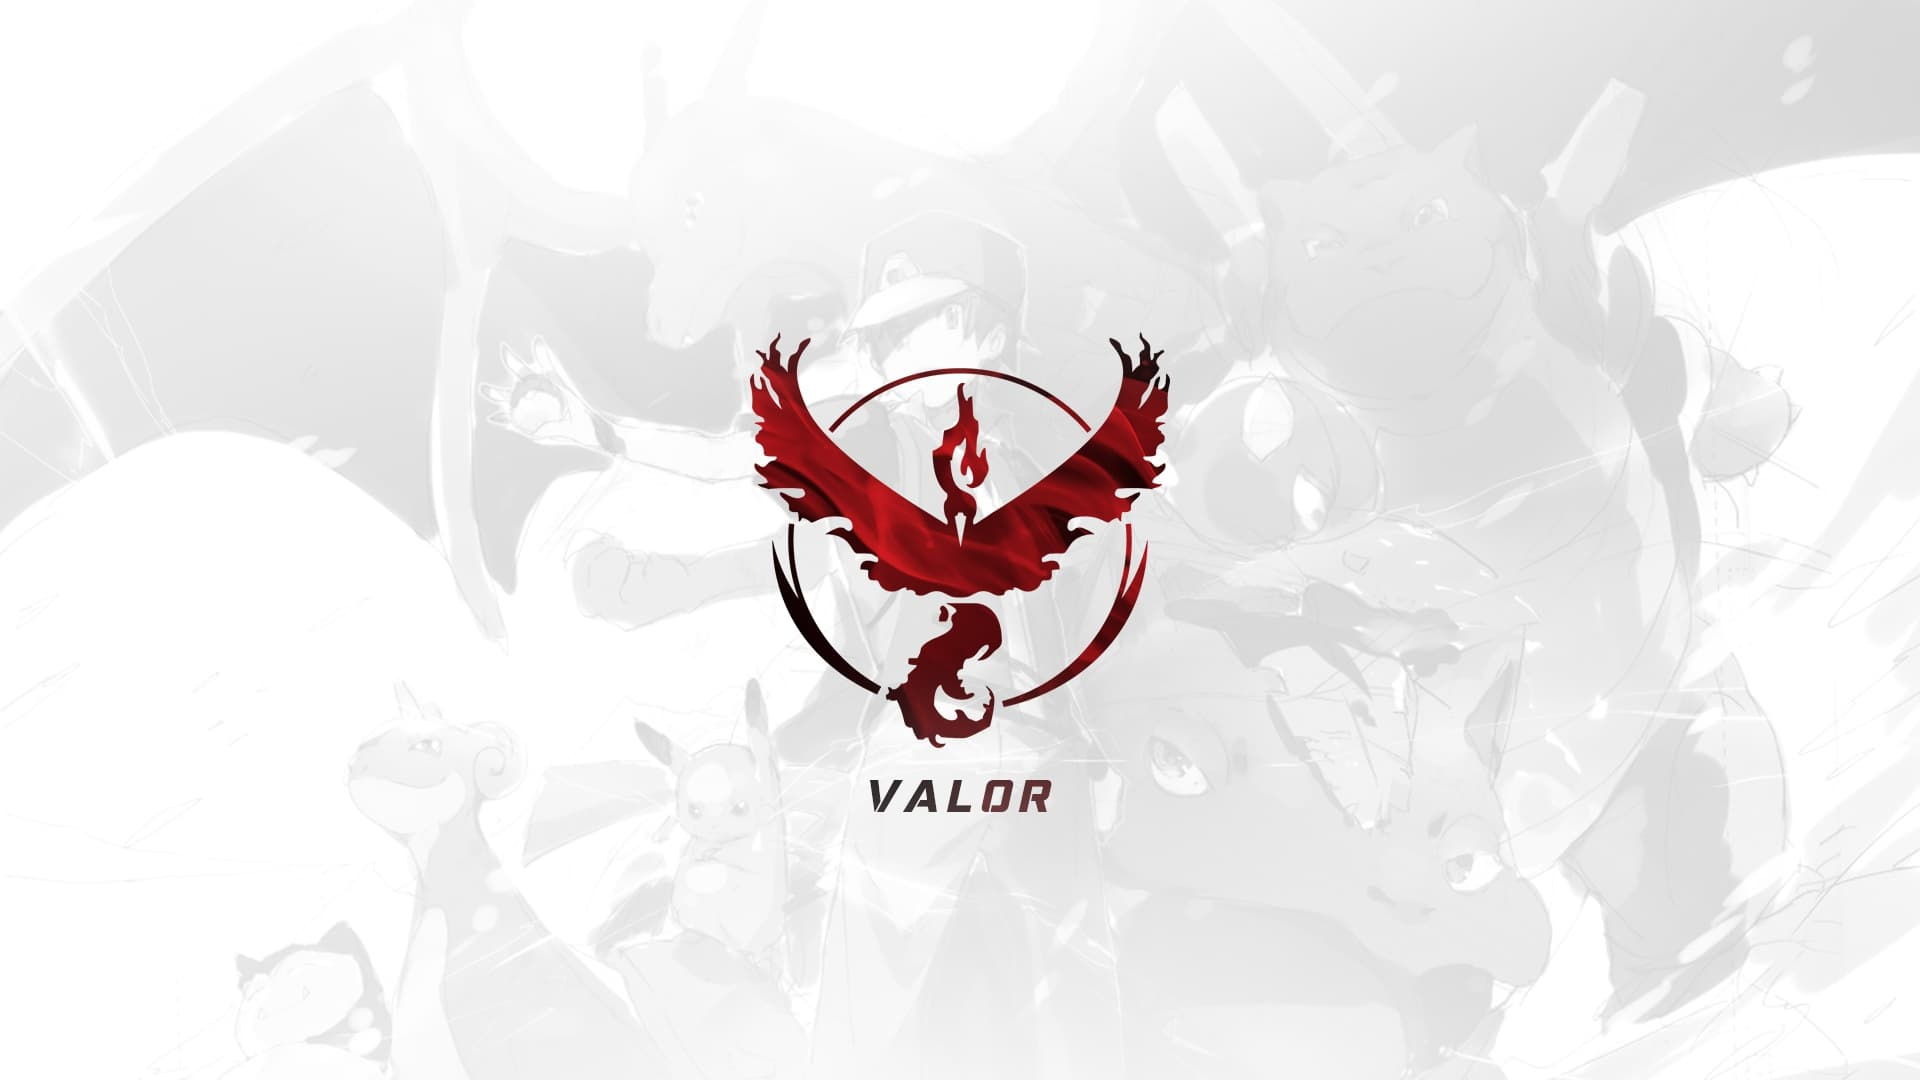 Red Team Valor Pokemon GO wallpapers HD 2016 High Resolution